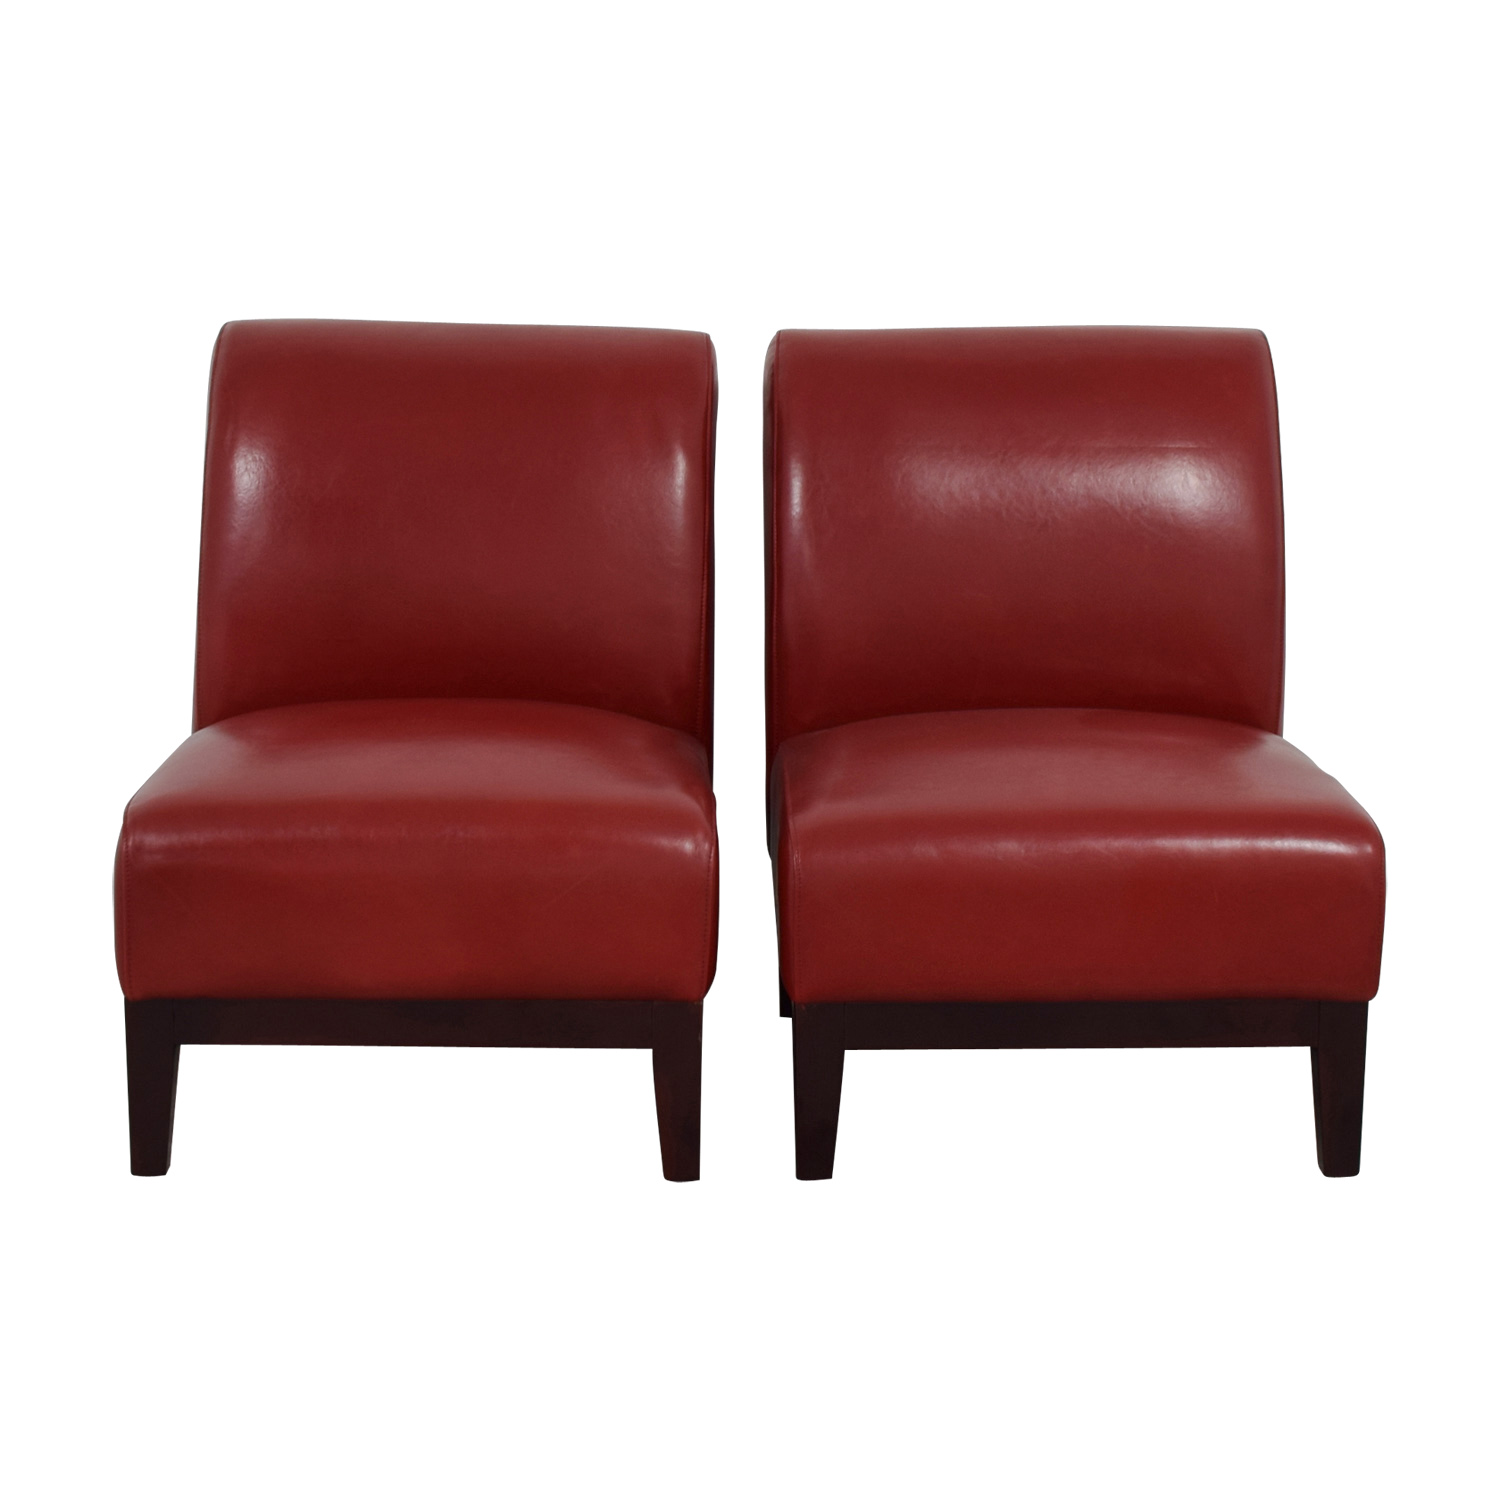 Red Leather Accent Chairs Discount ...